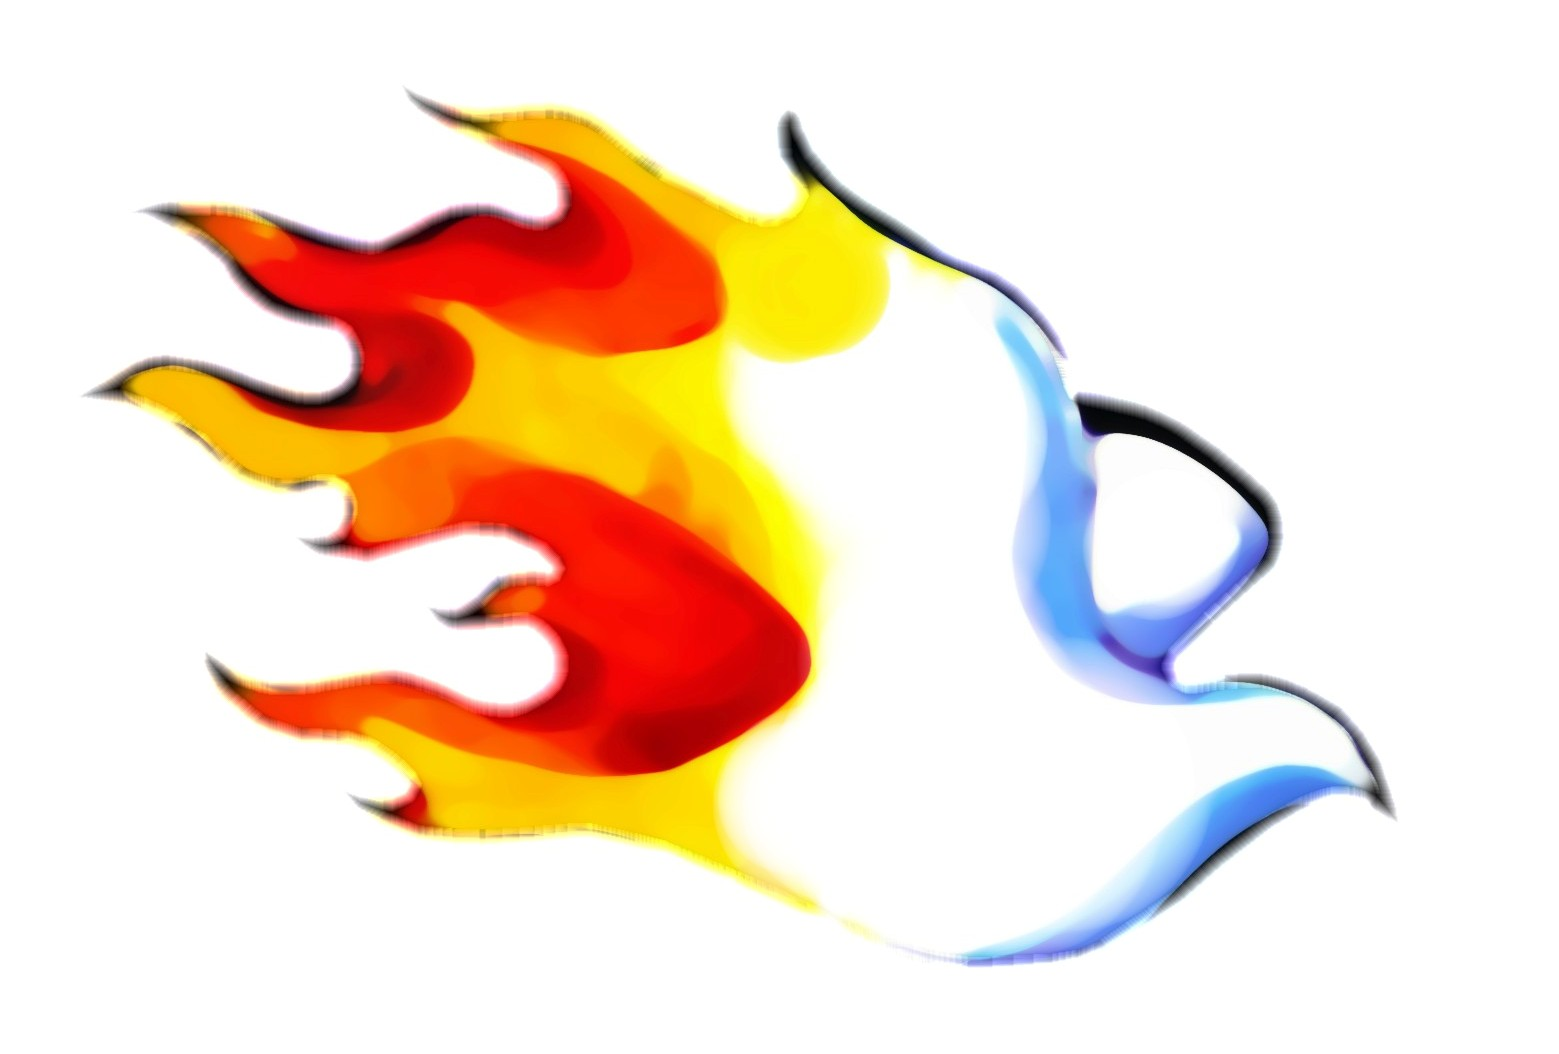 hight resolution of fire cliparts 107093 license personal use